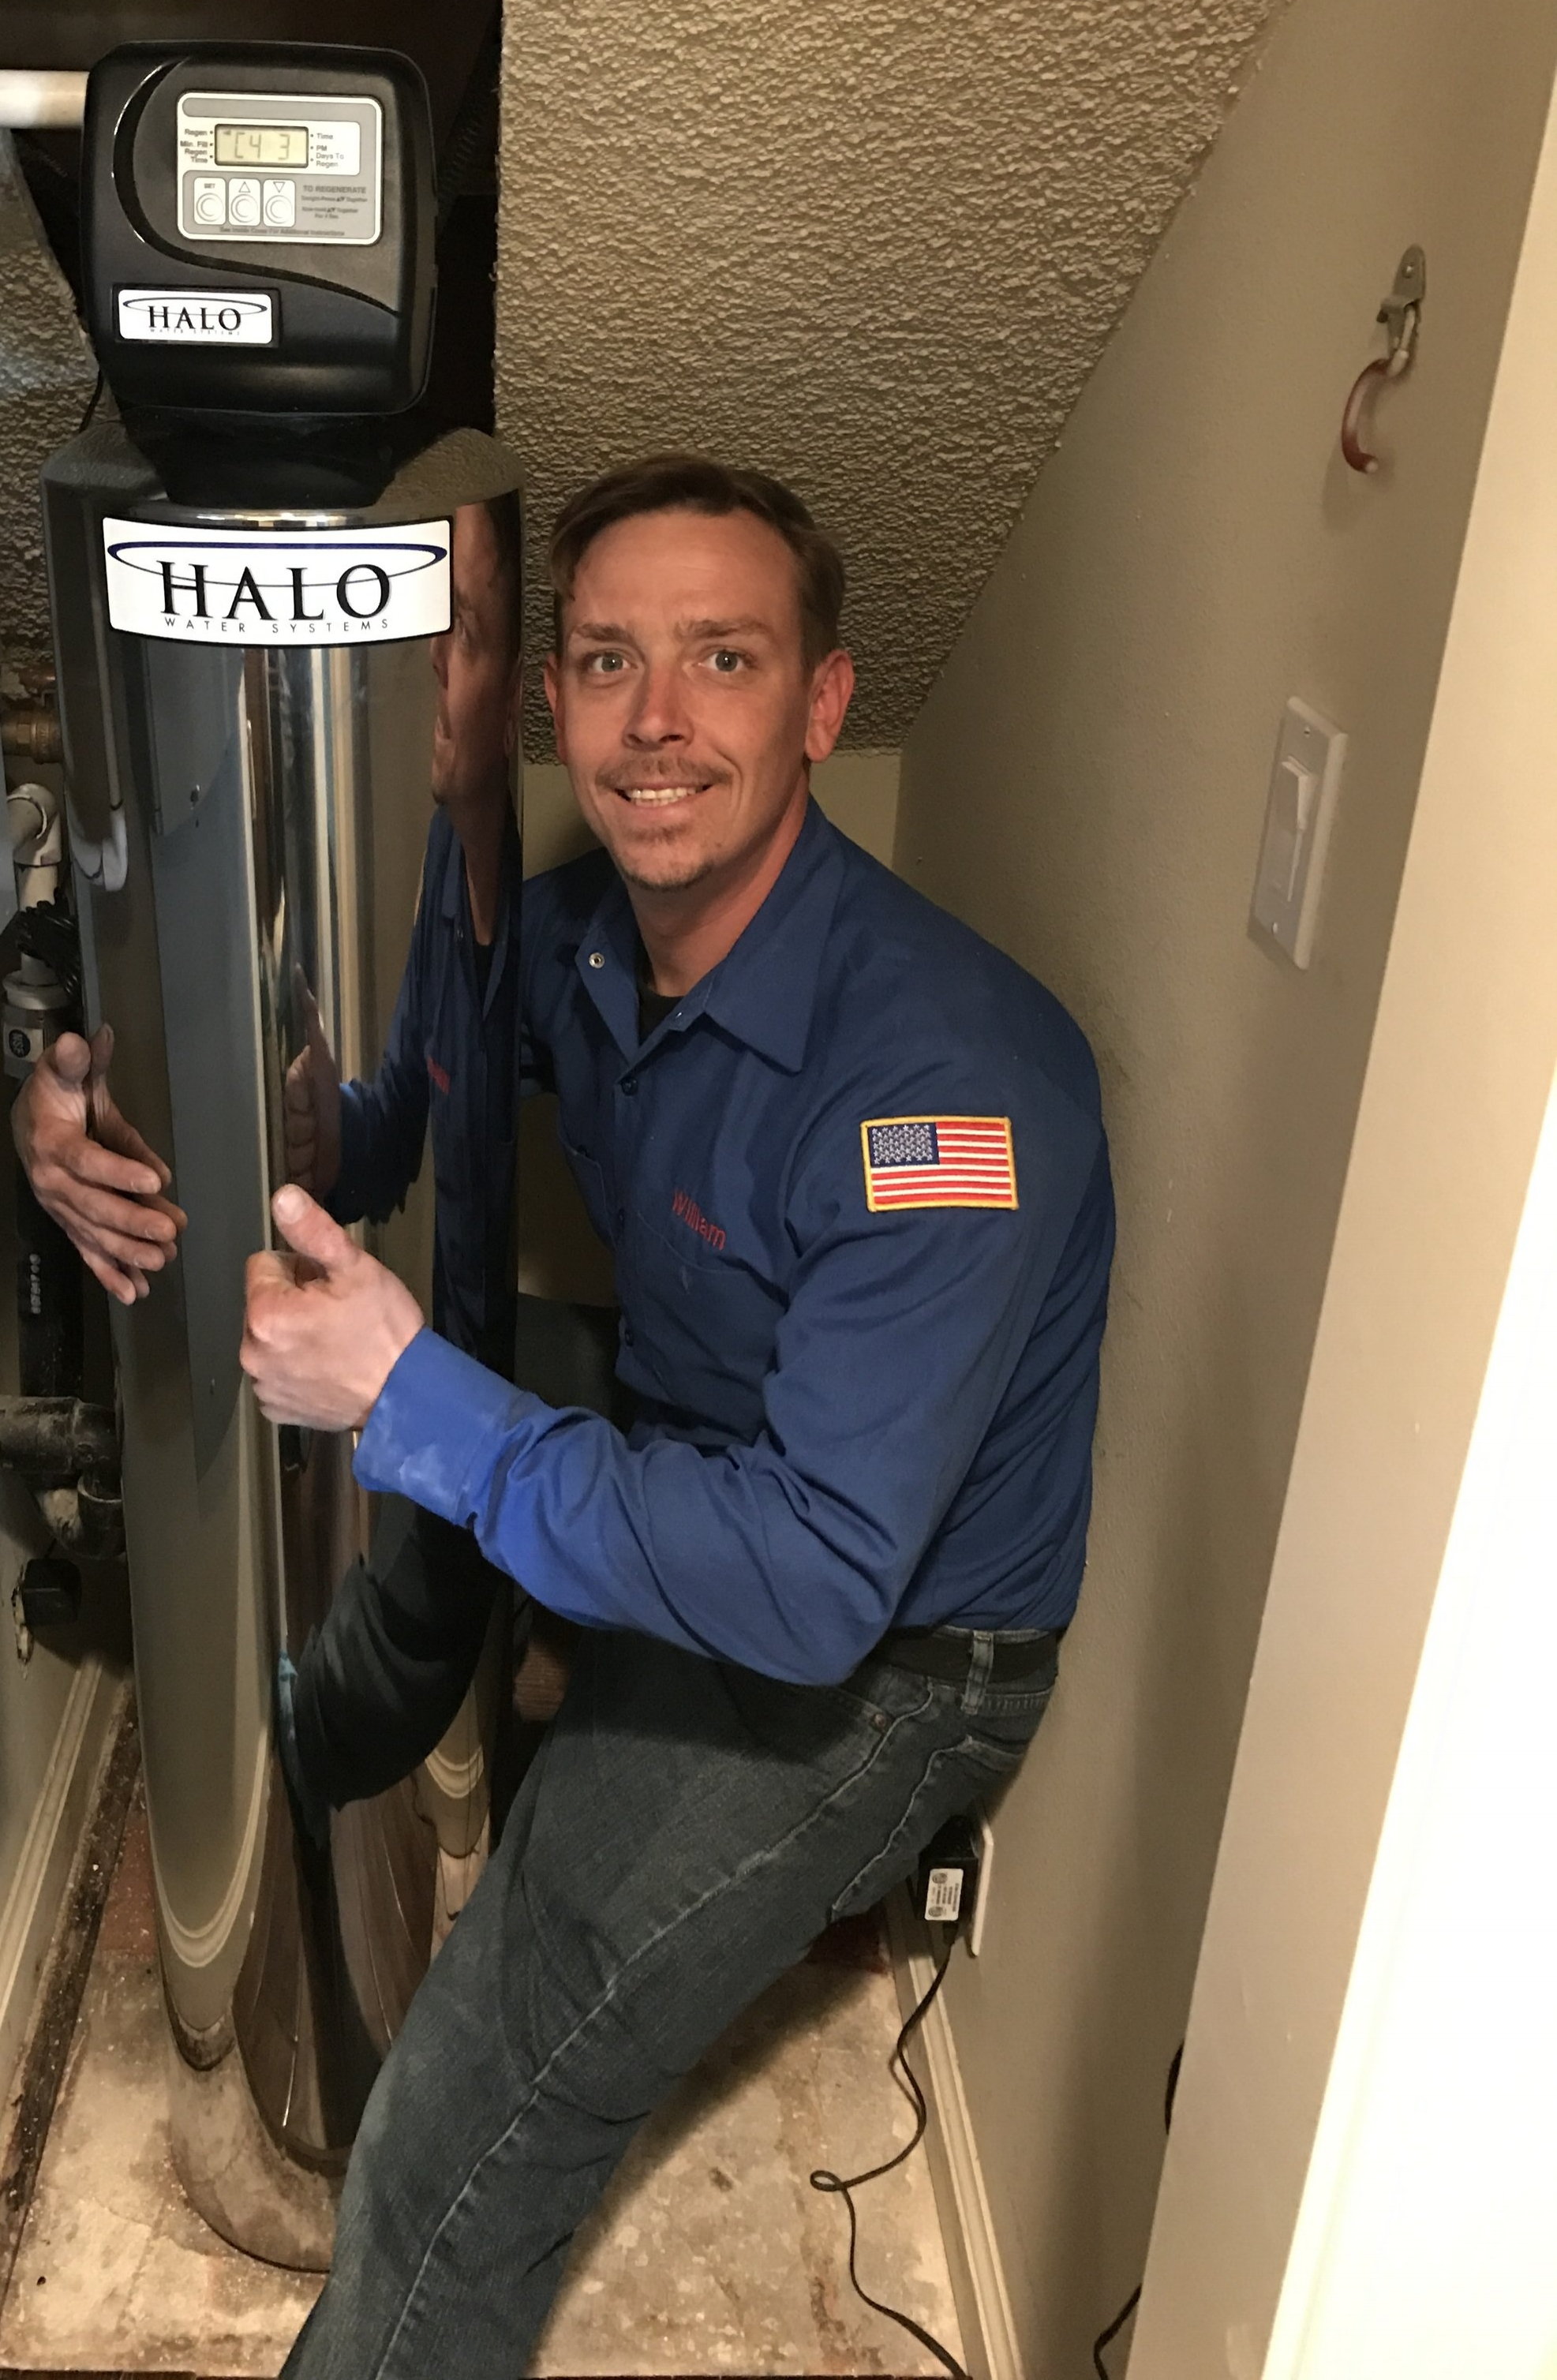 Resolved home services William with a Halo water heater